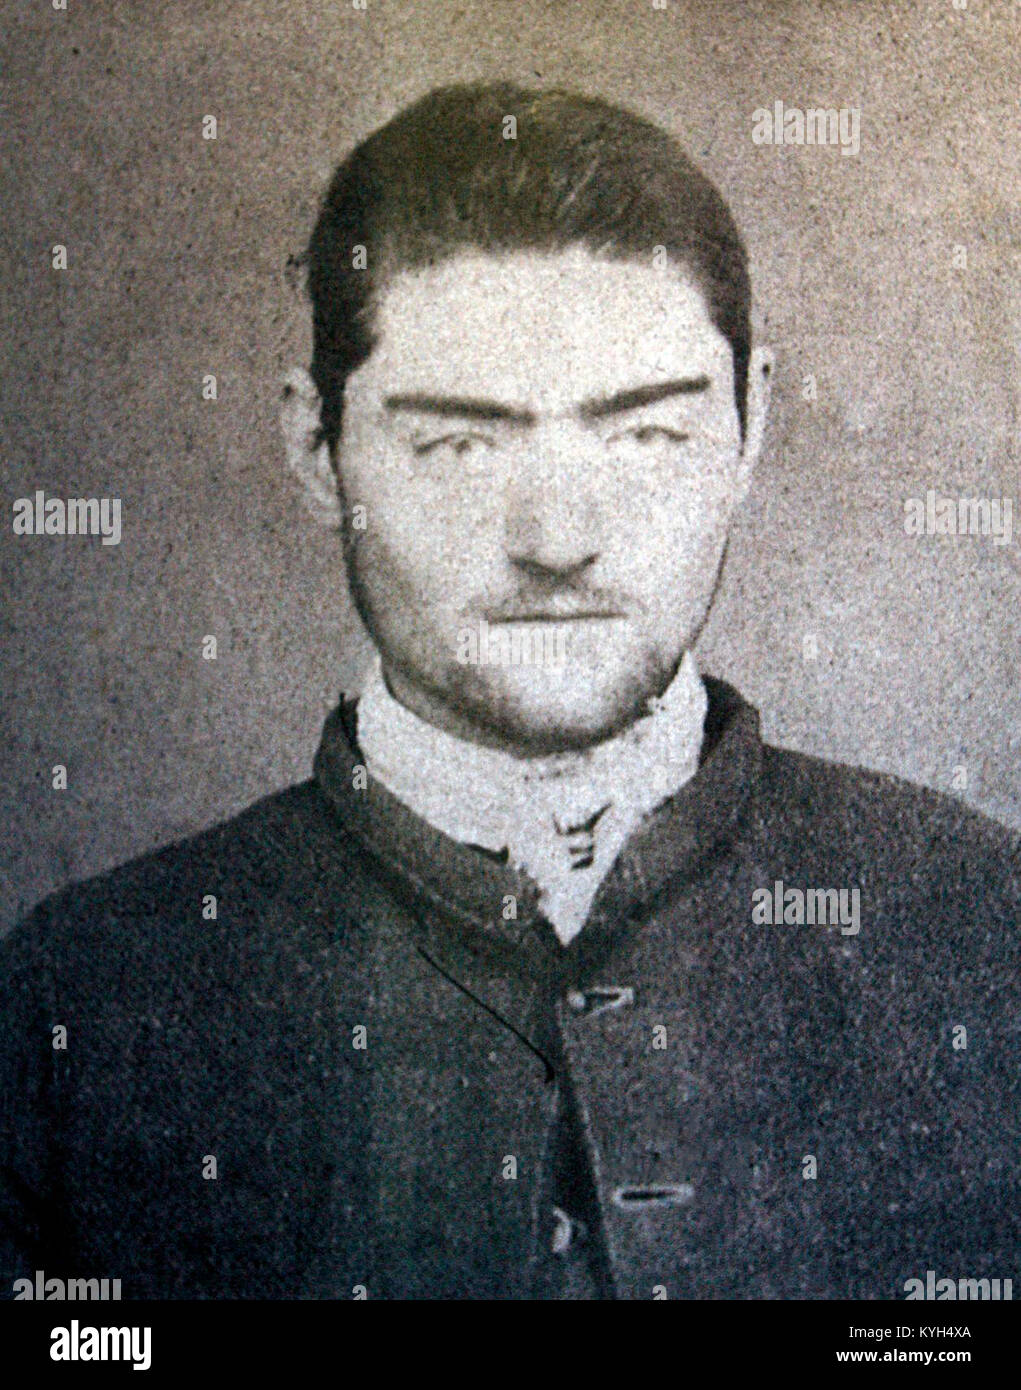 Ned Kelly, outlaw Ned Kelly, Mugshot of Ned Kelly taken at Pentridge after his transfer from the Beechworth Gaol - Stock Image